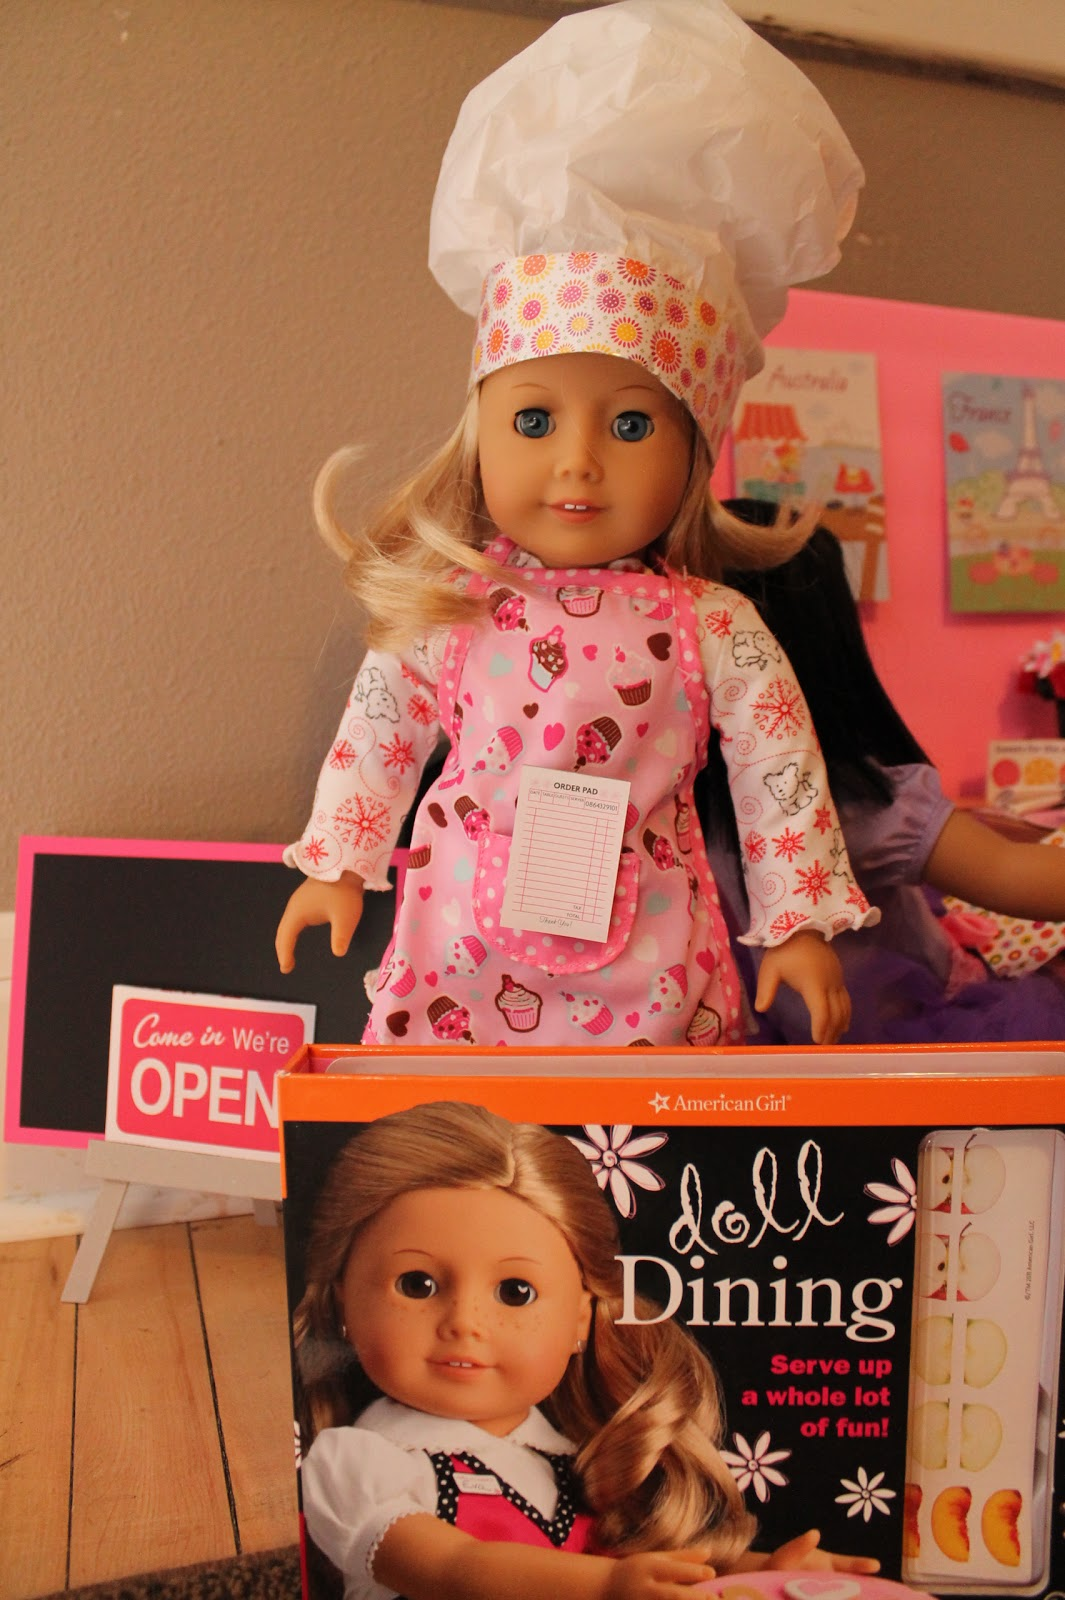 American Girl Doll Play Creating An American Girl Doll Diner